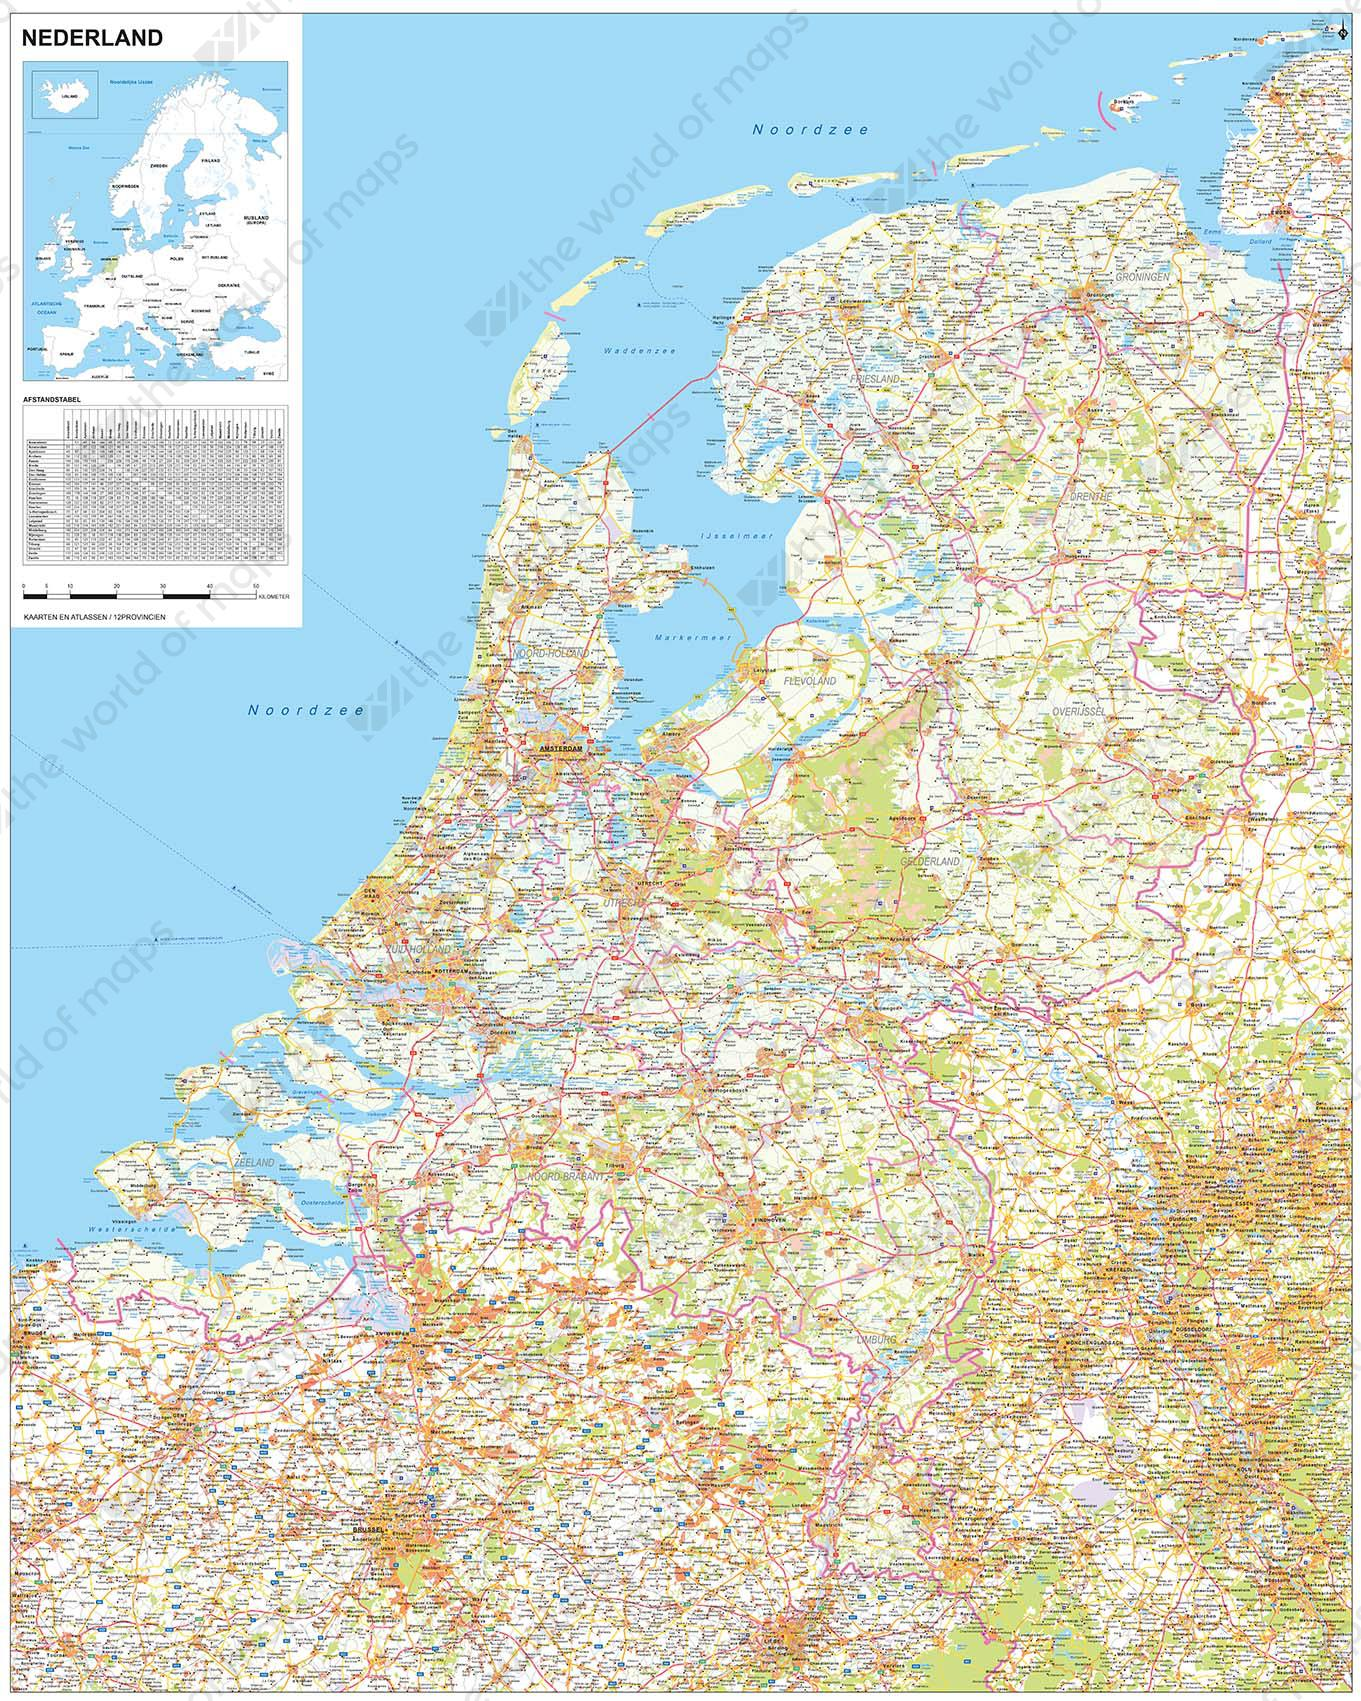 Digital Map Of The Netherlands 1378  The World of Mapscom